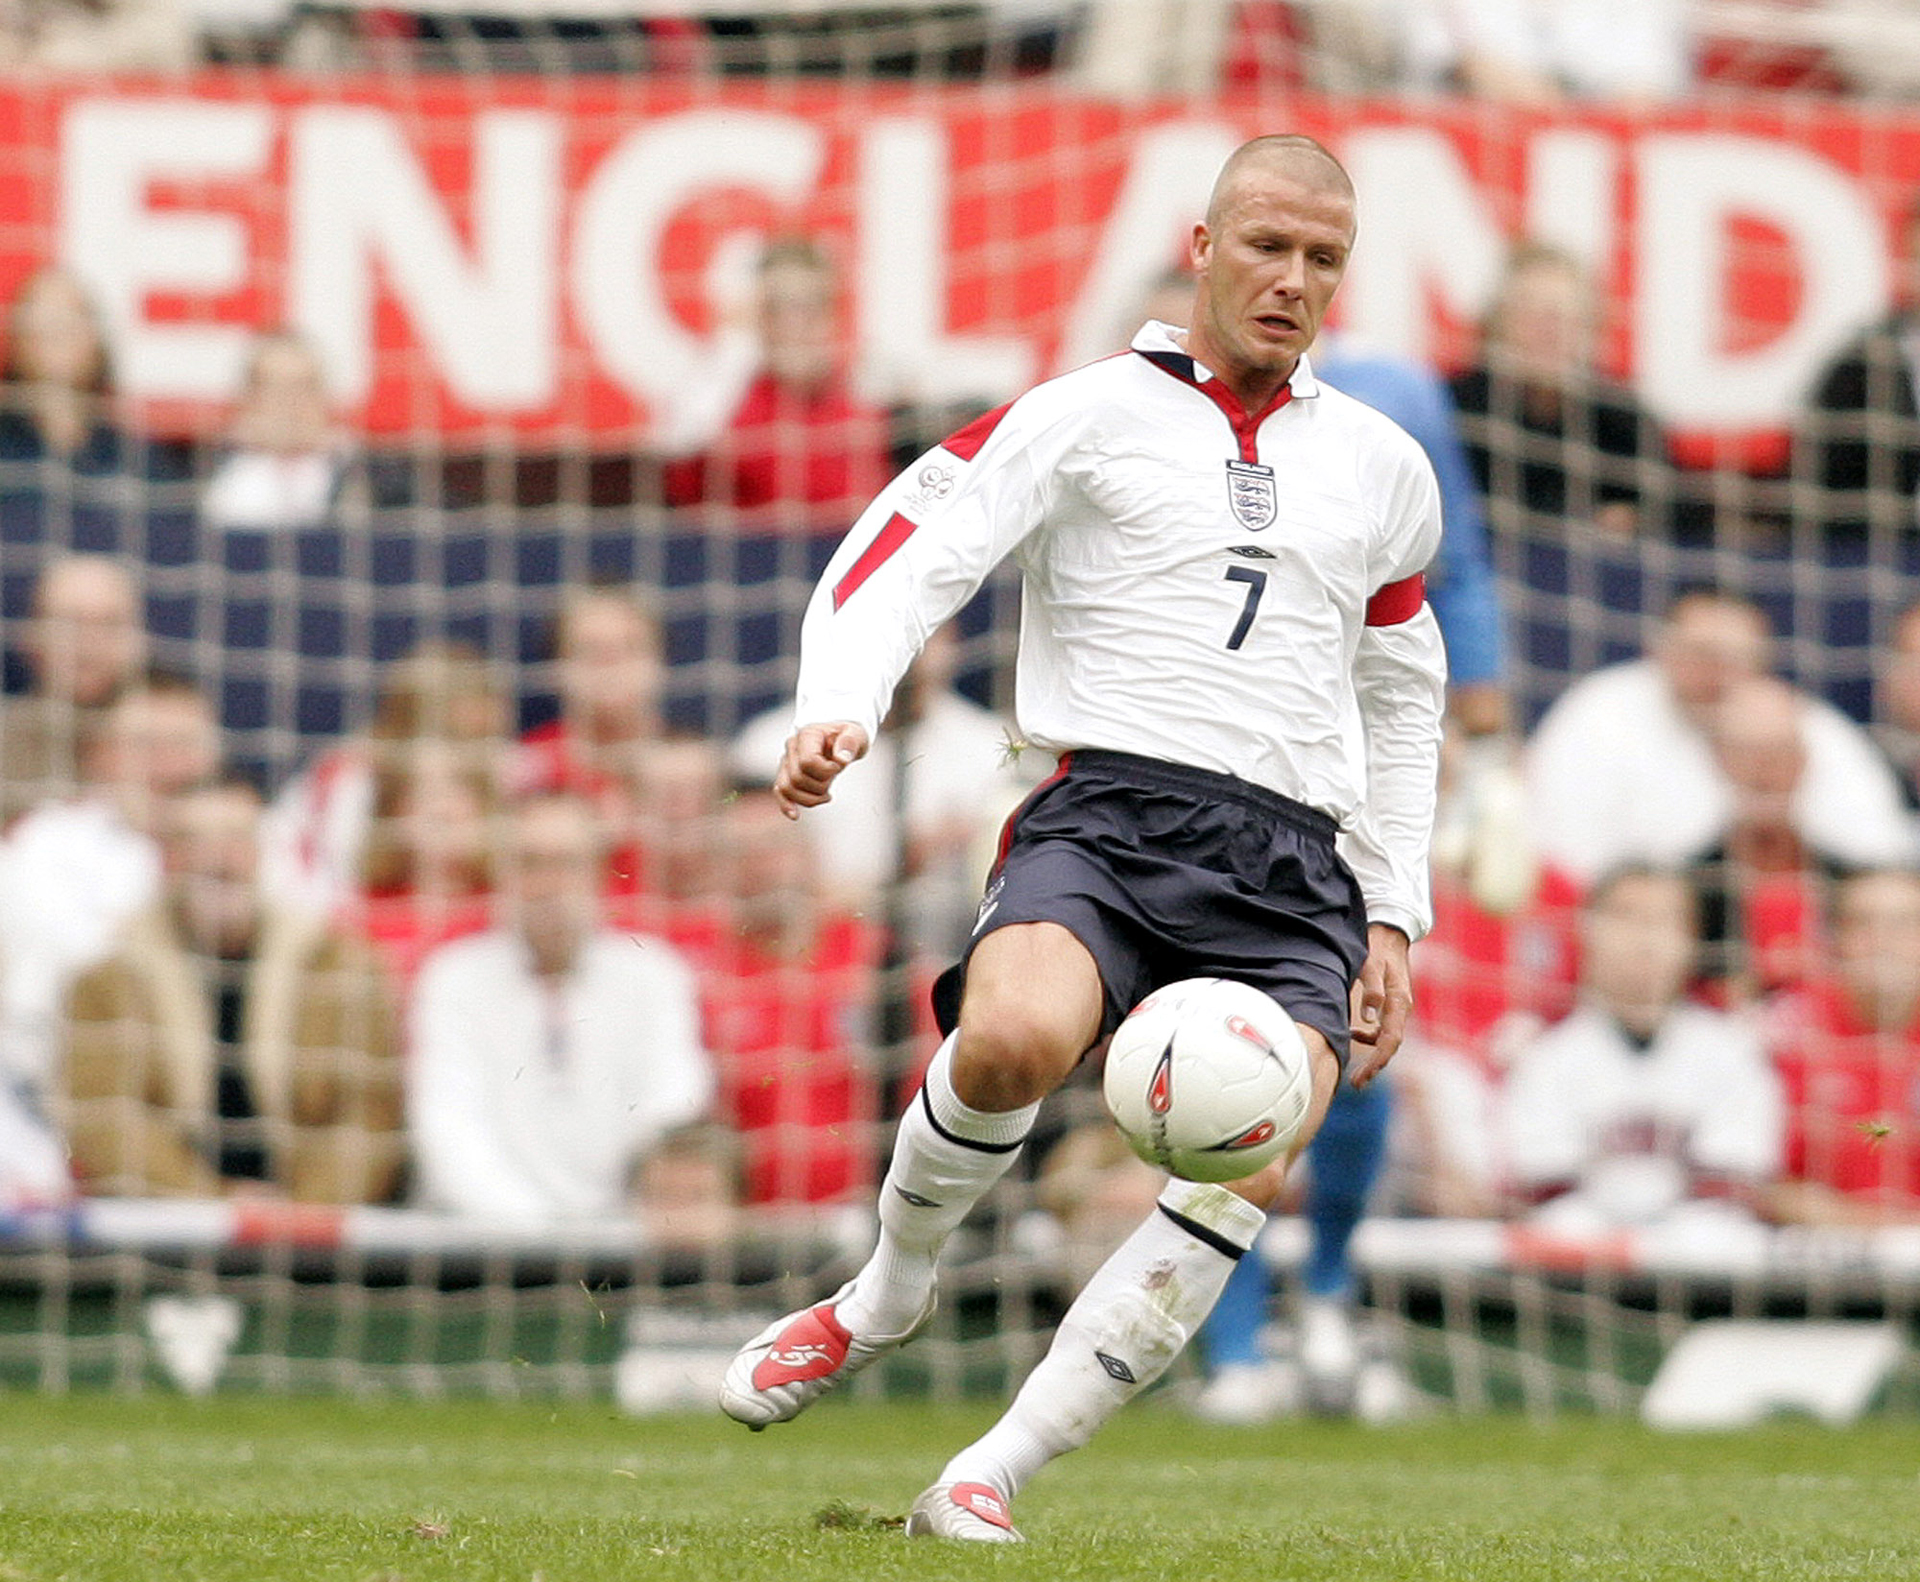 David Beckham Wallpaper England 4